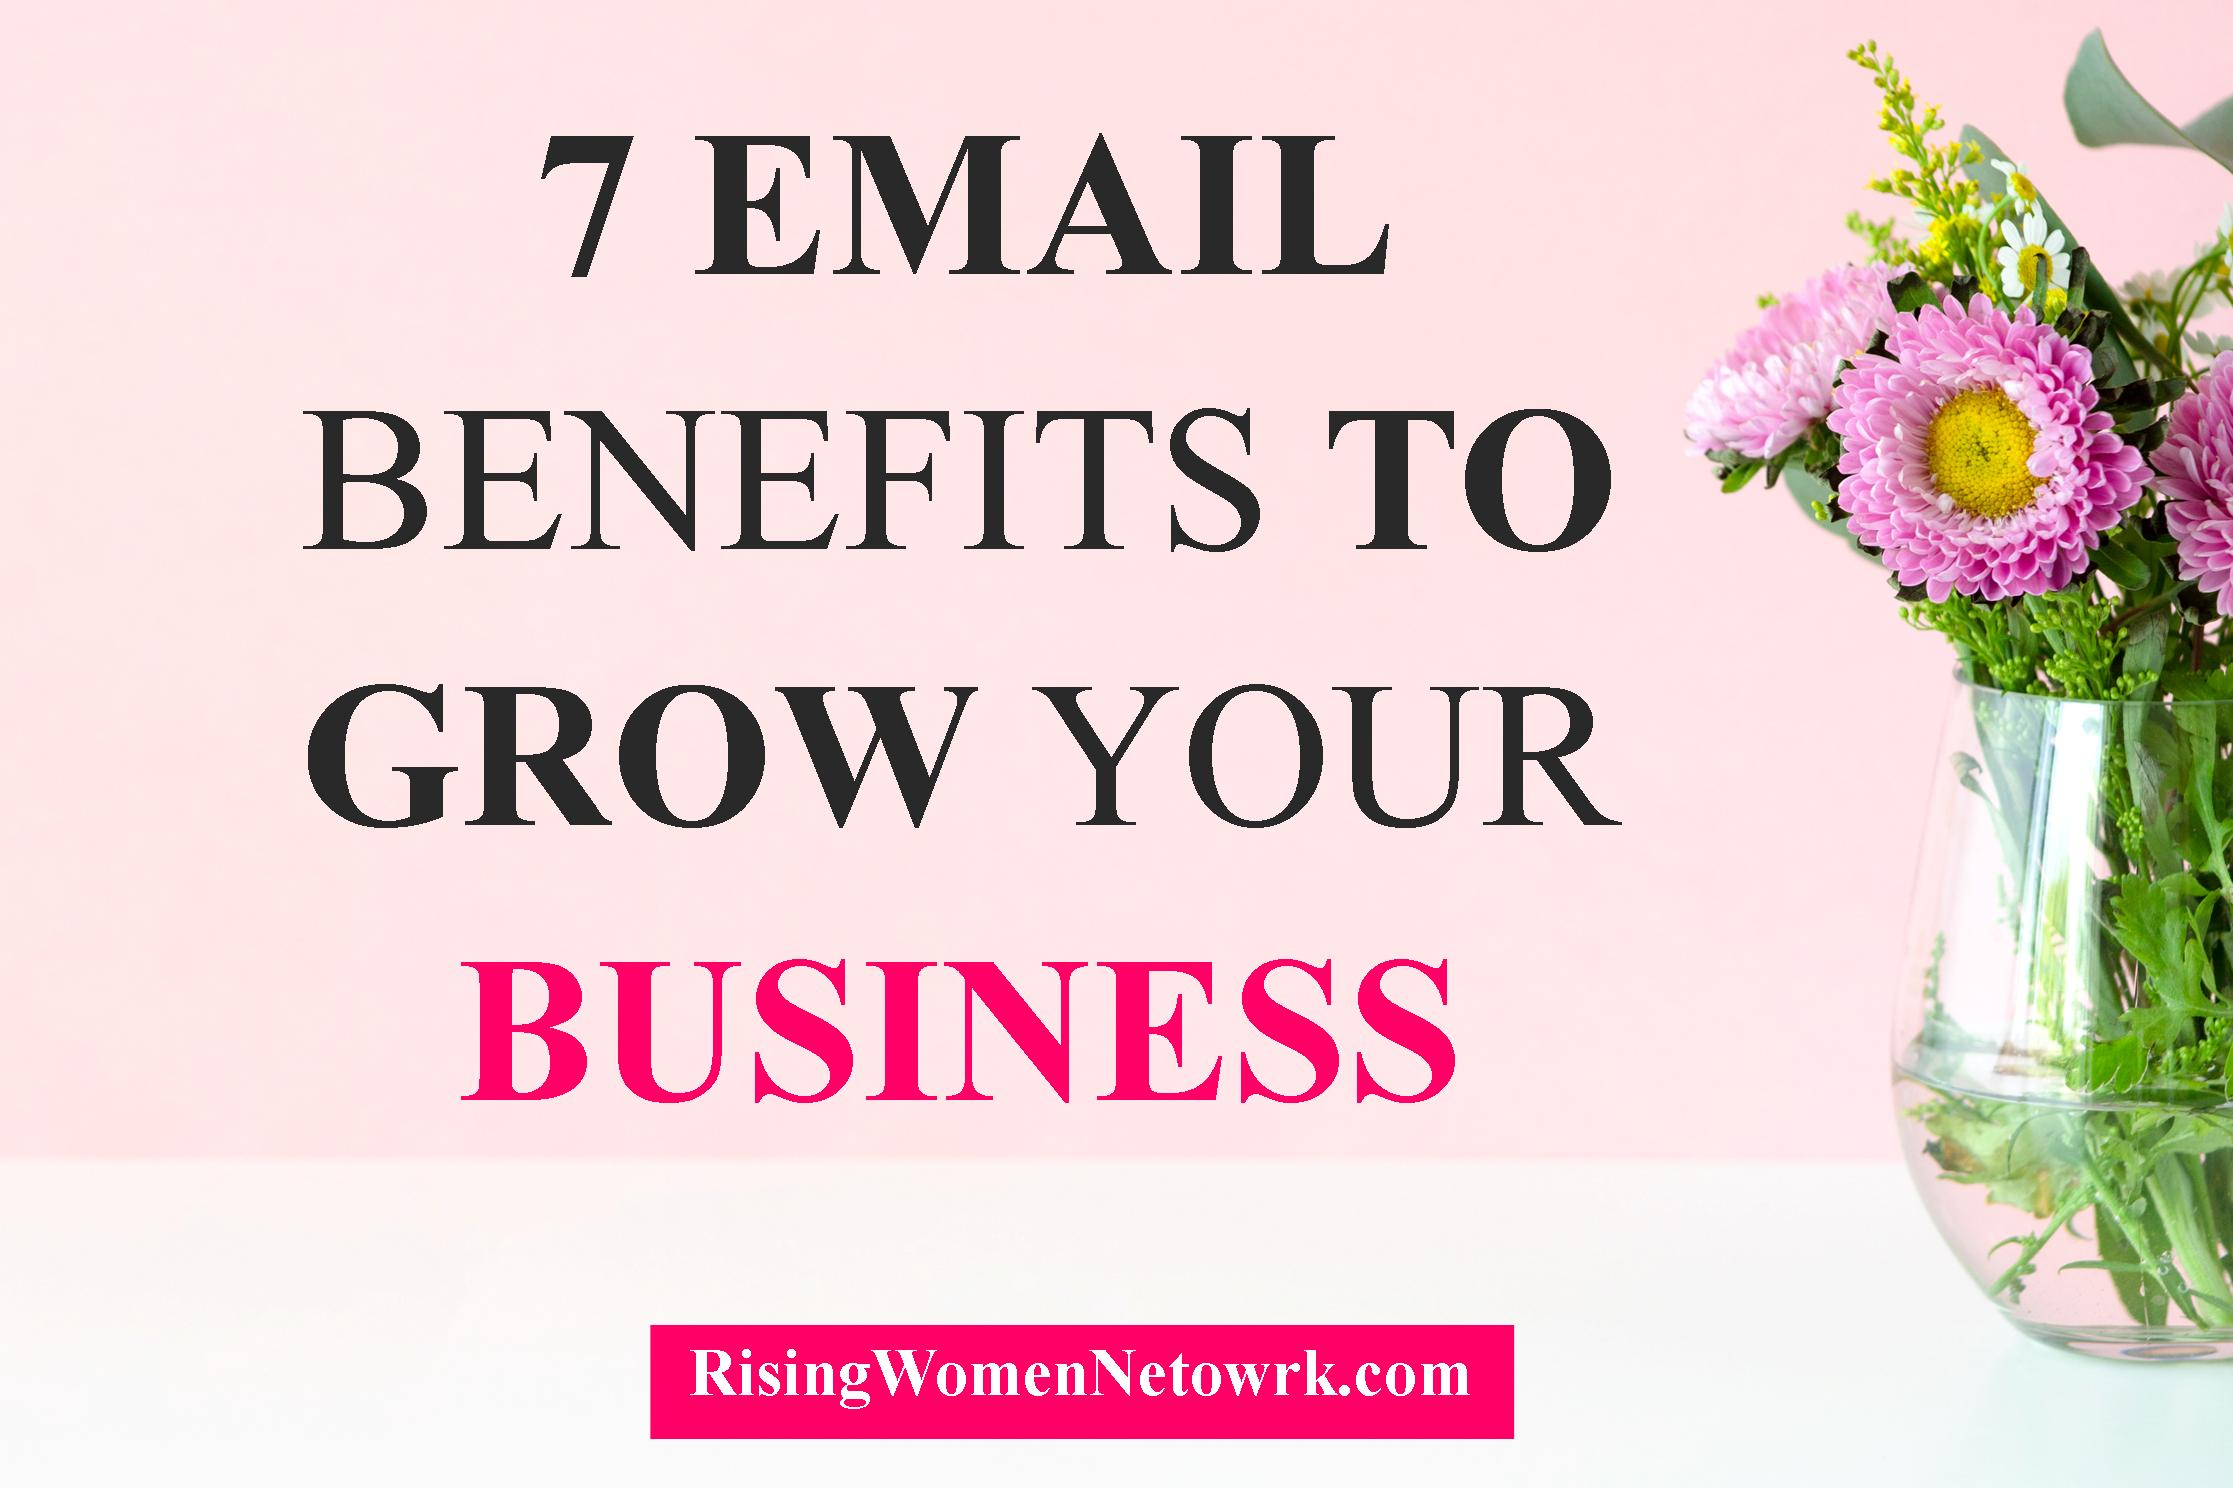 7 Email Benefits To Grow Your Business